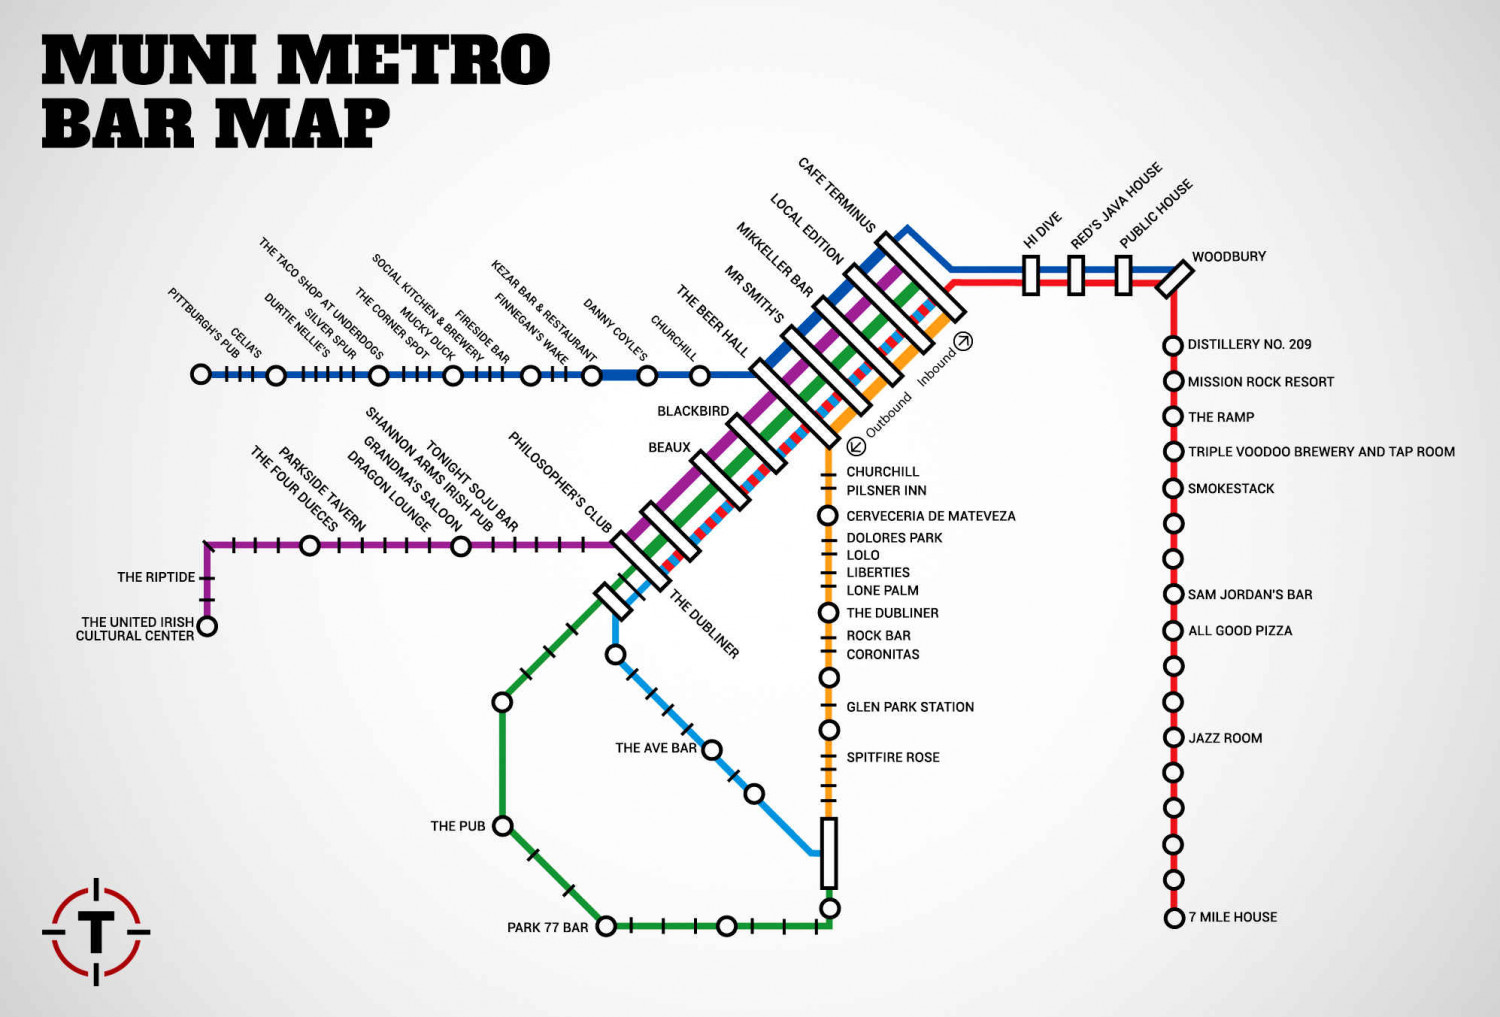 Muni Metro Bar Map Infographic